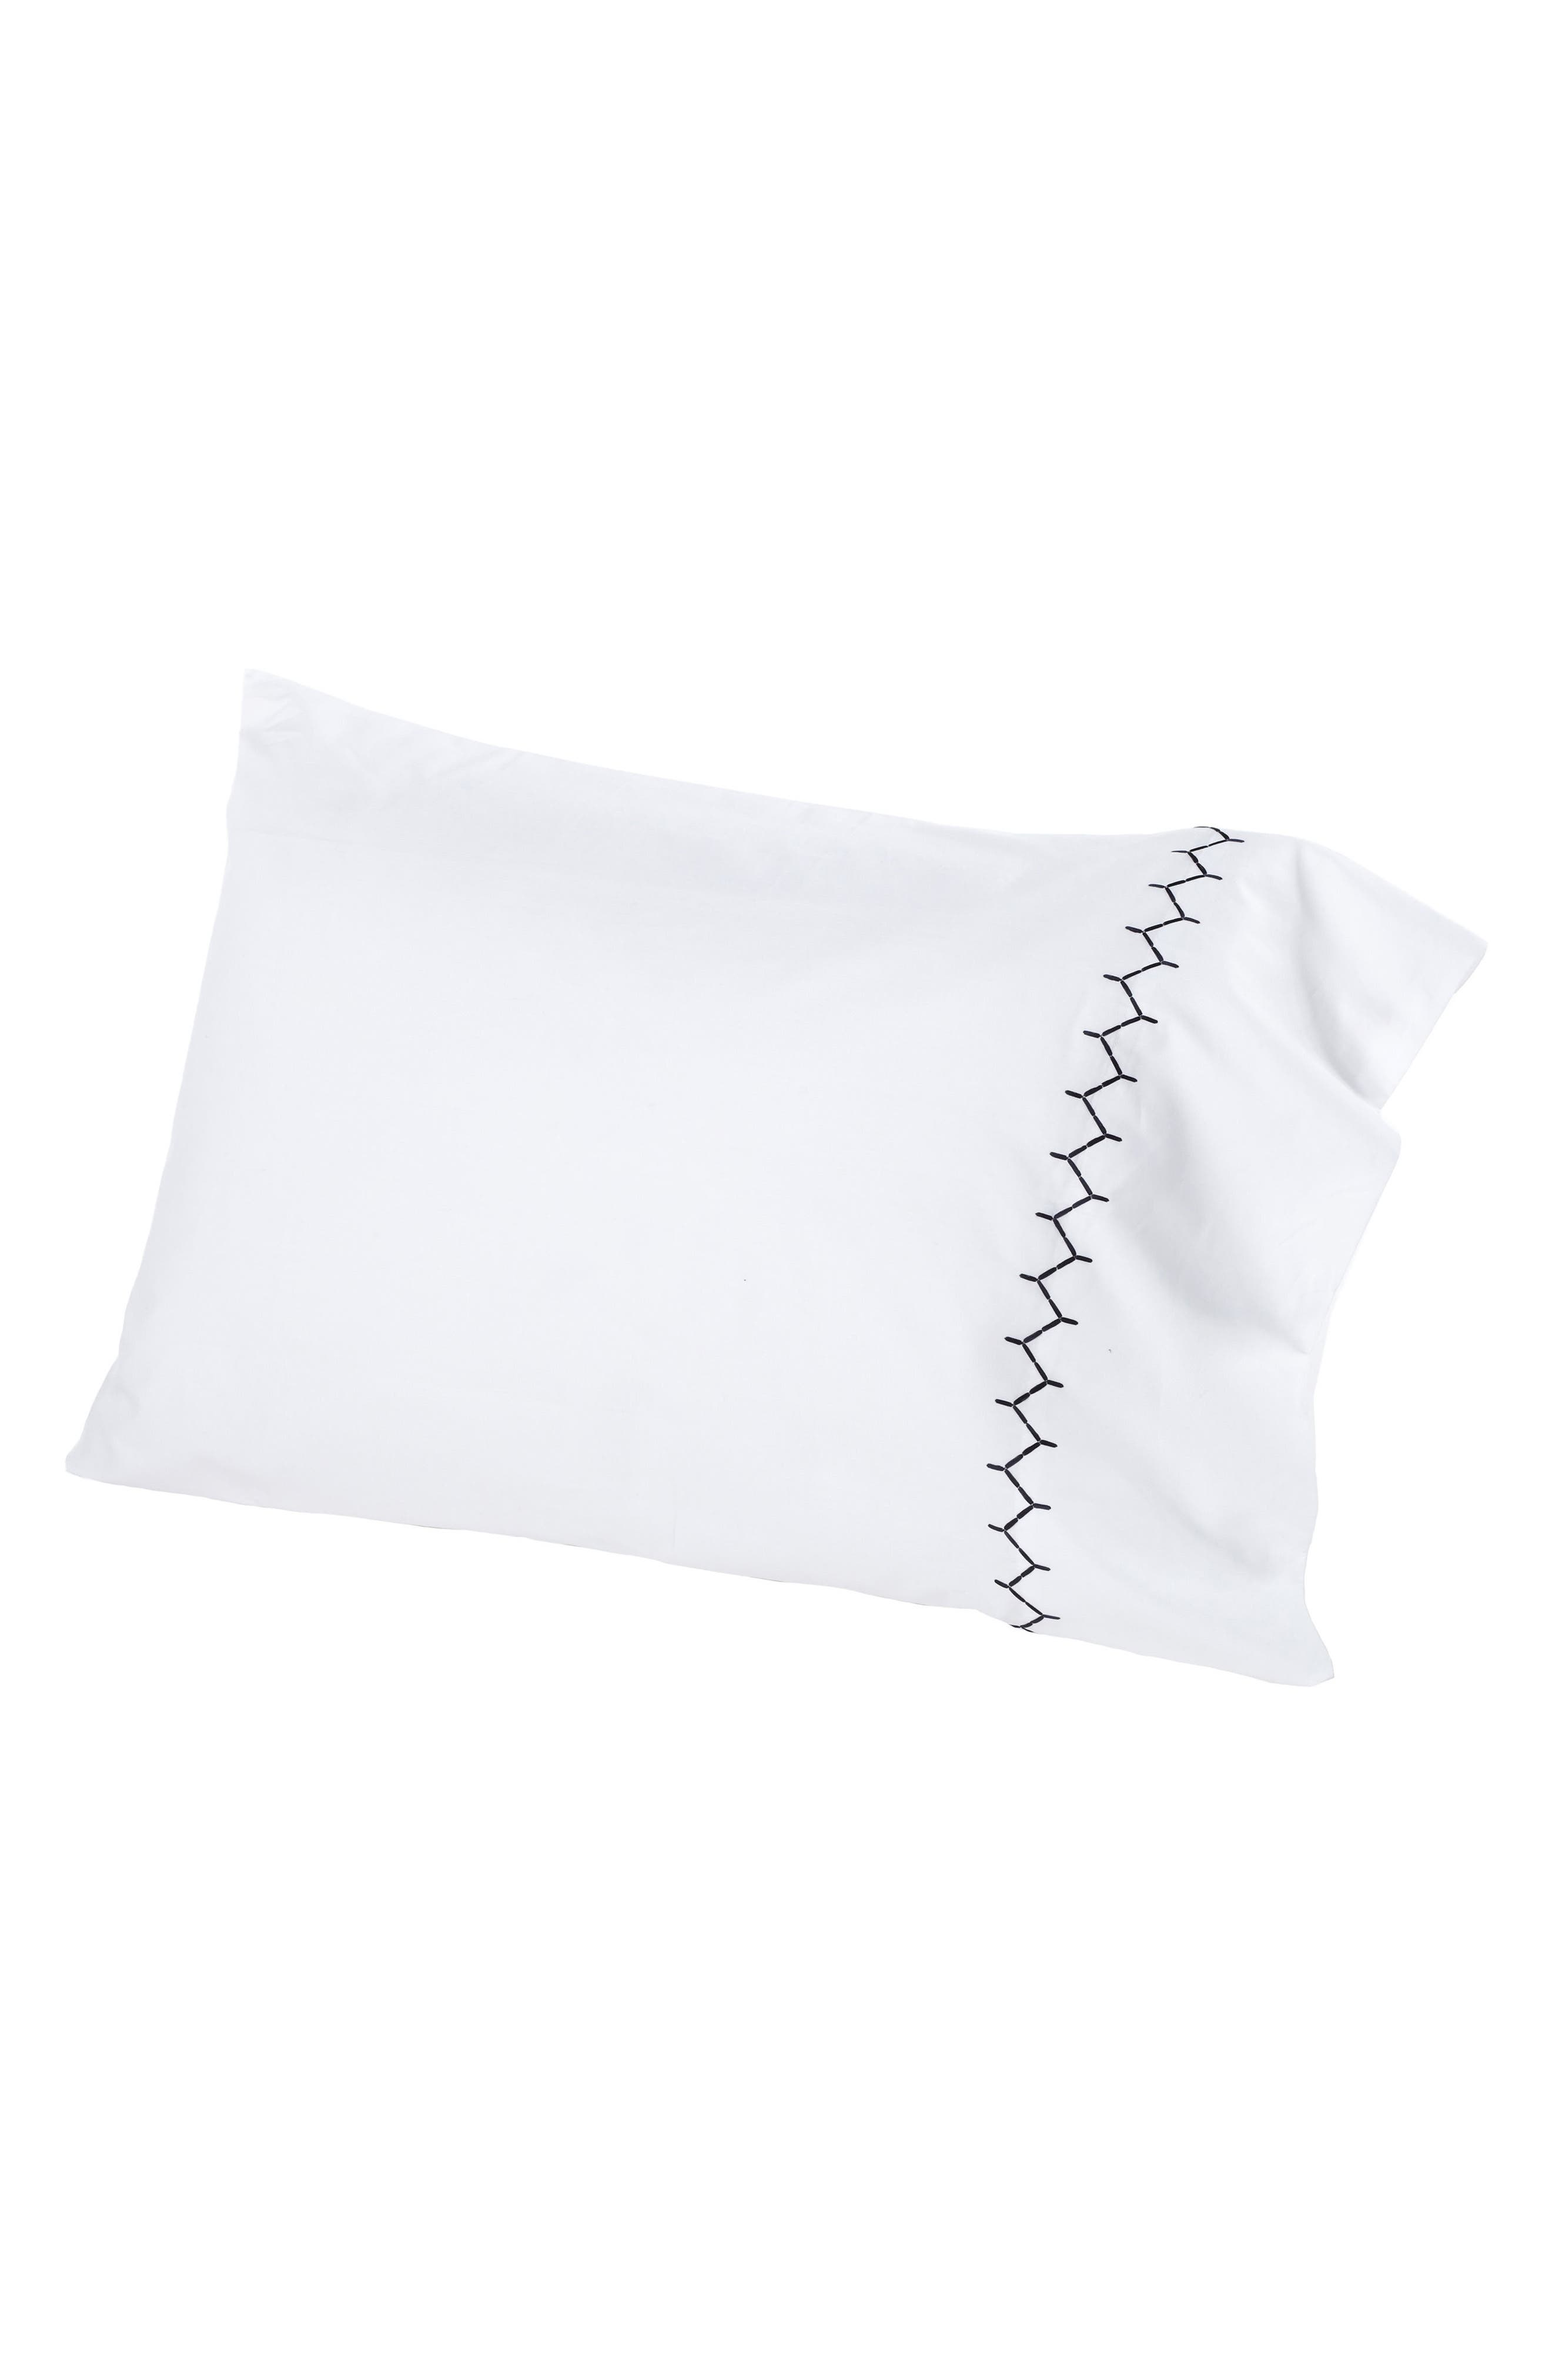 Stitched Set of 2 Combed Cotton Pillow Cases,                             Main thumbnail 1, color,                             Ink/ White